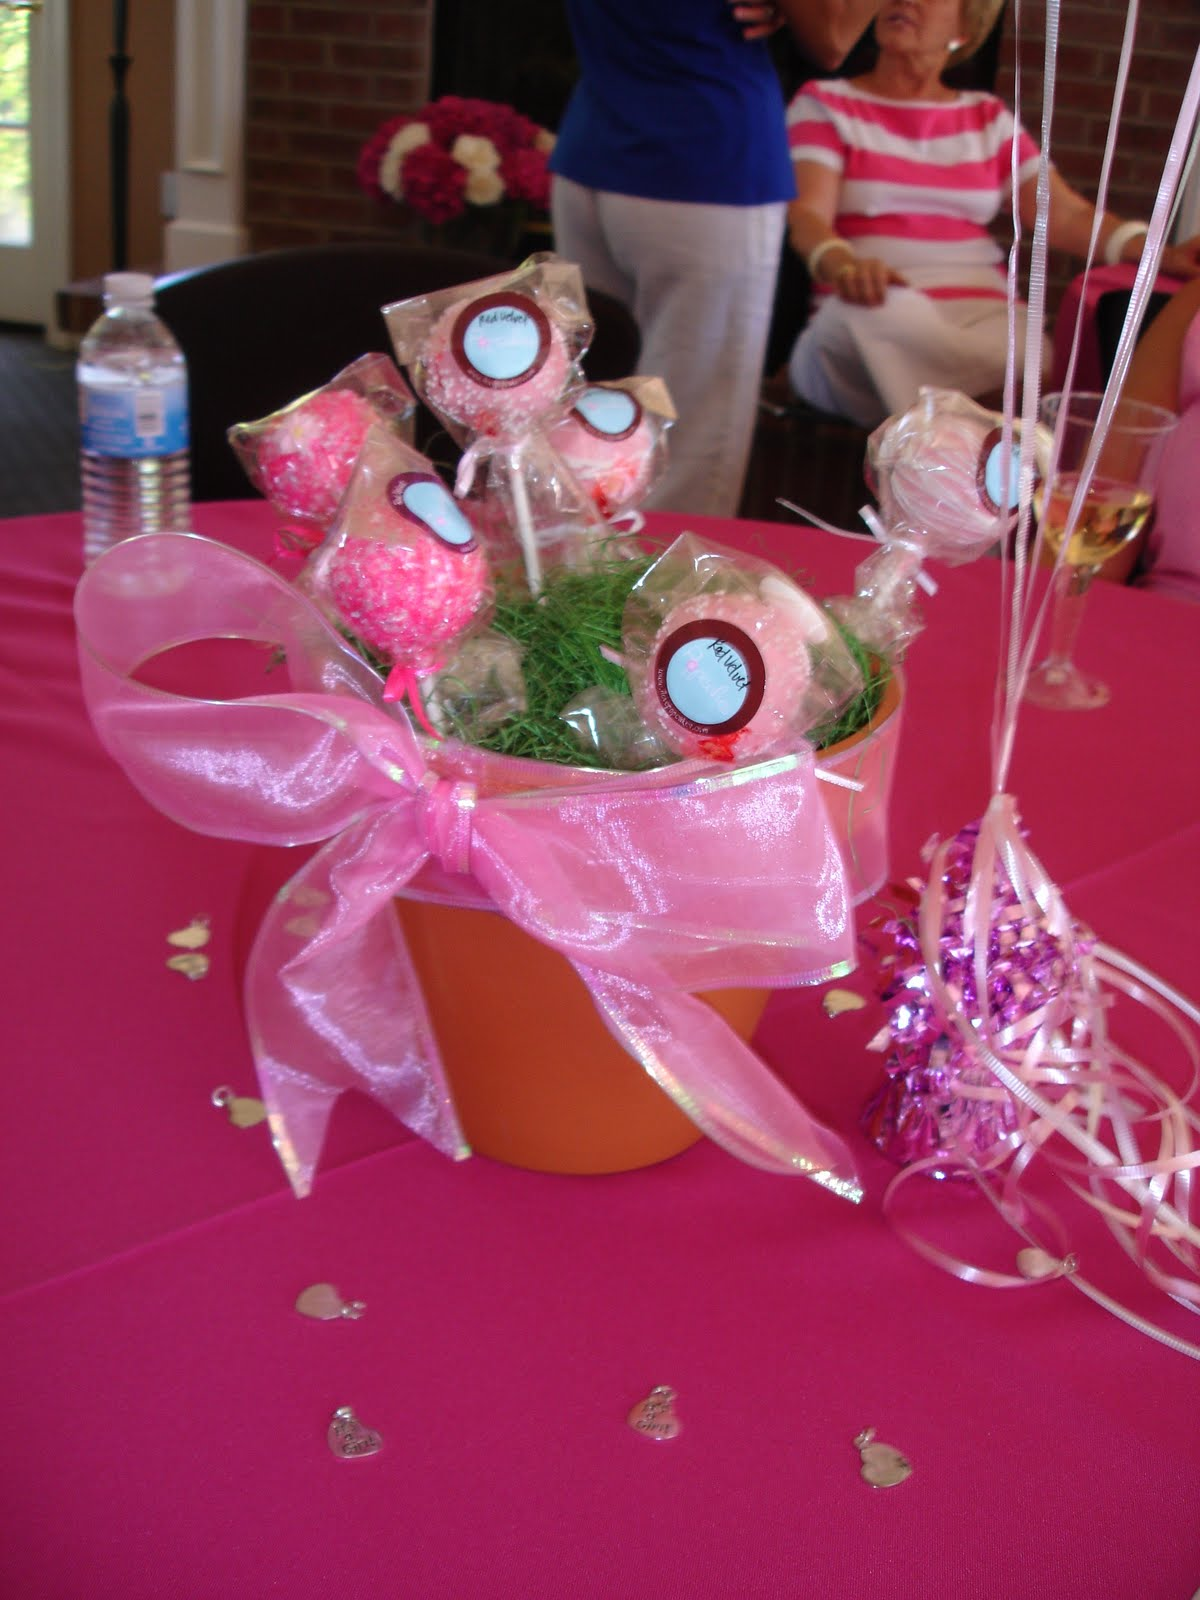 Oc Mom Activities Baby Shower Ideas Center Pieces Favors In One